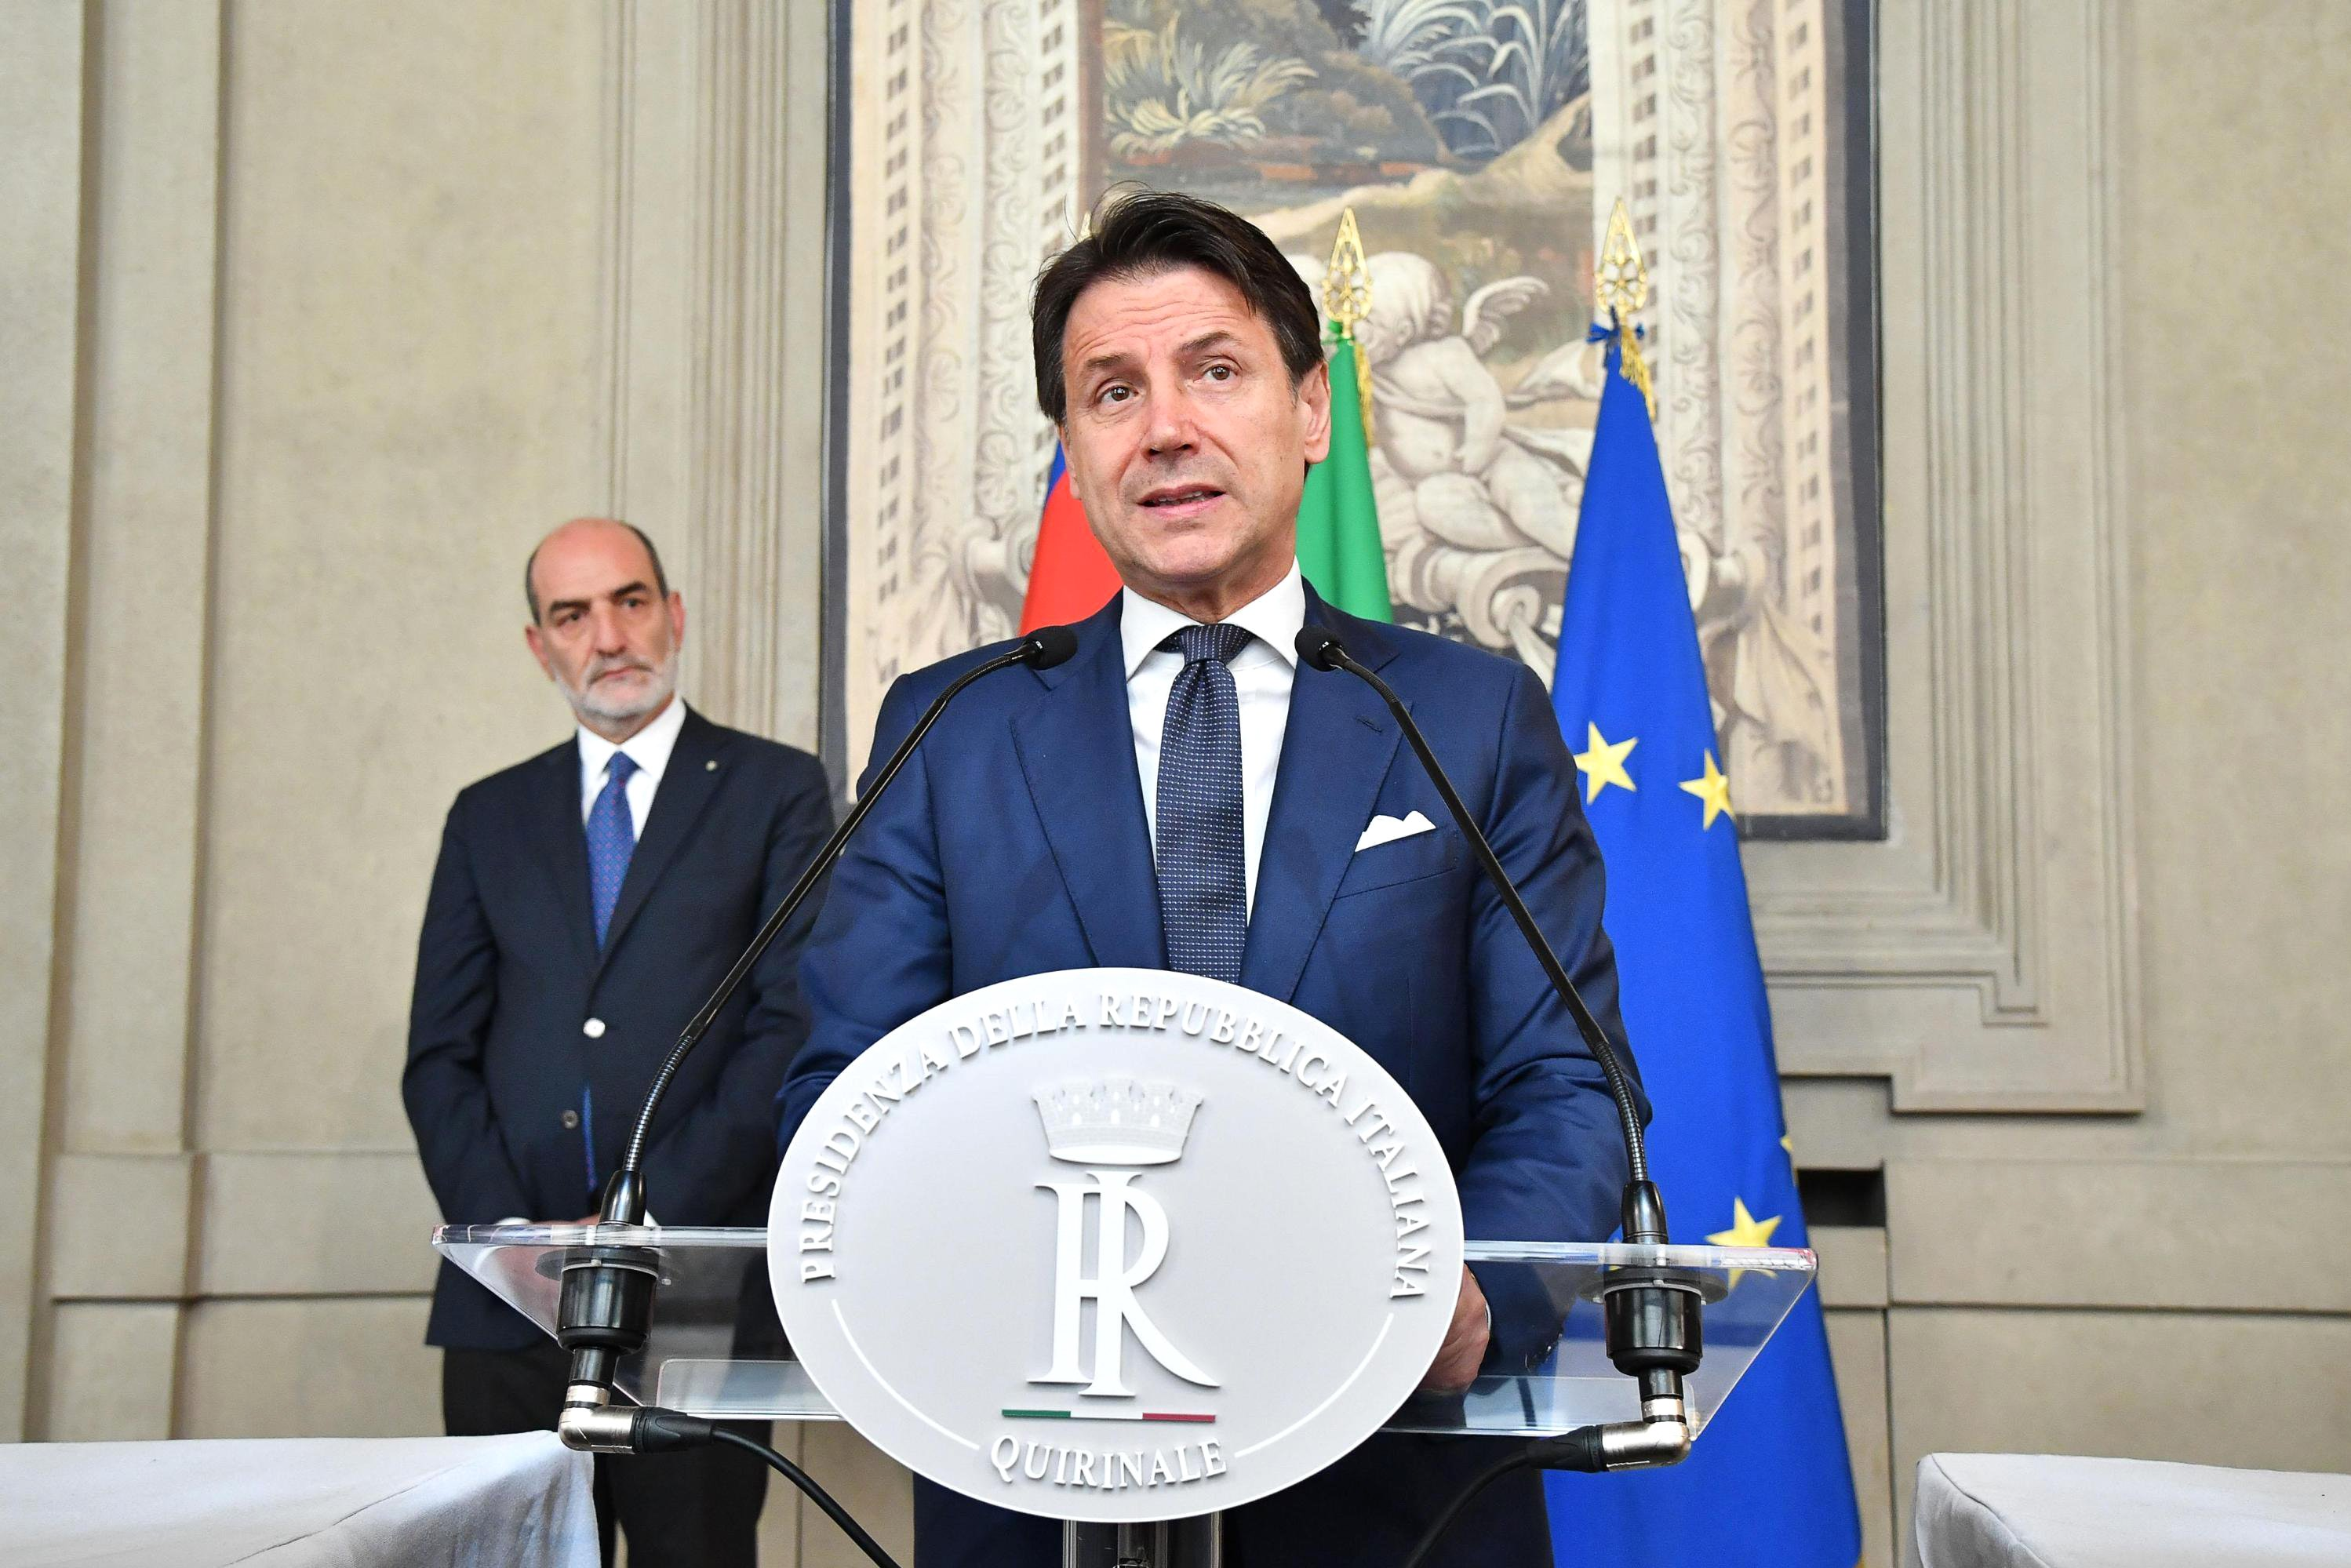 Italy's new ministers sworn in